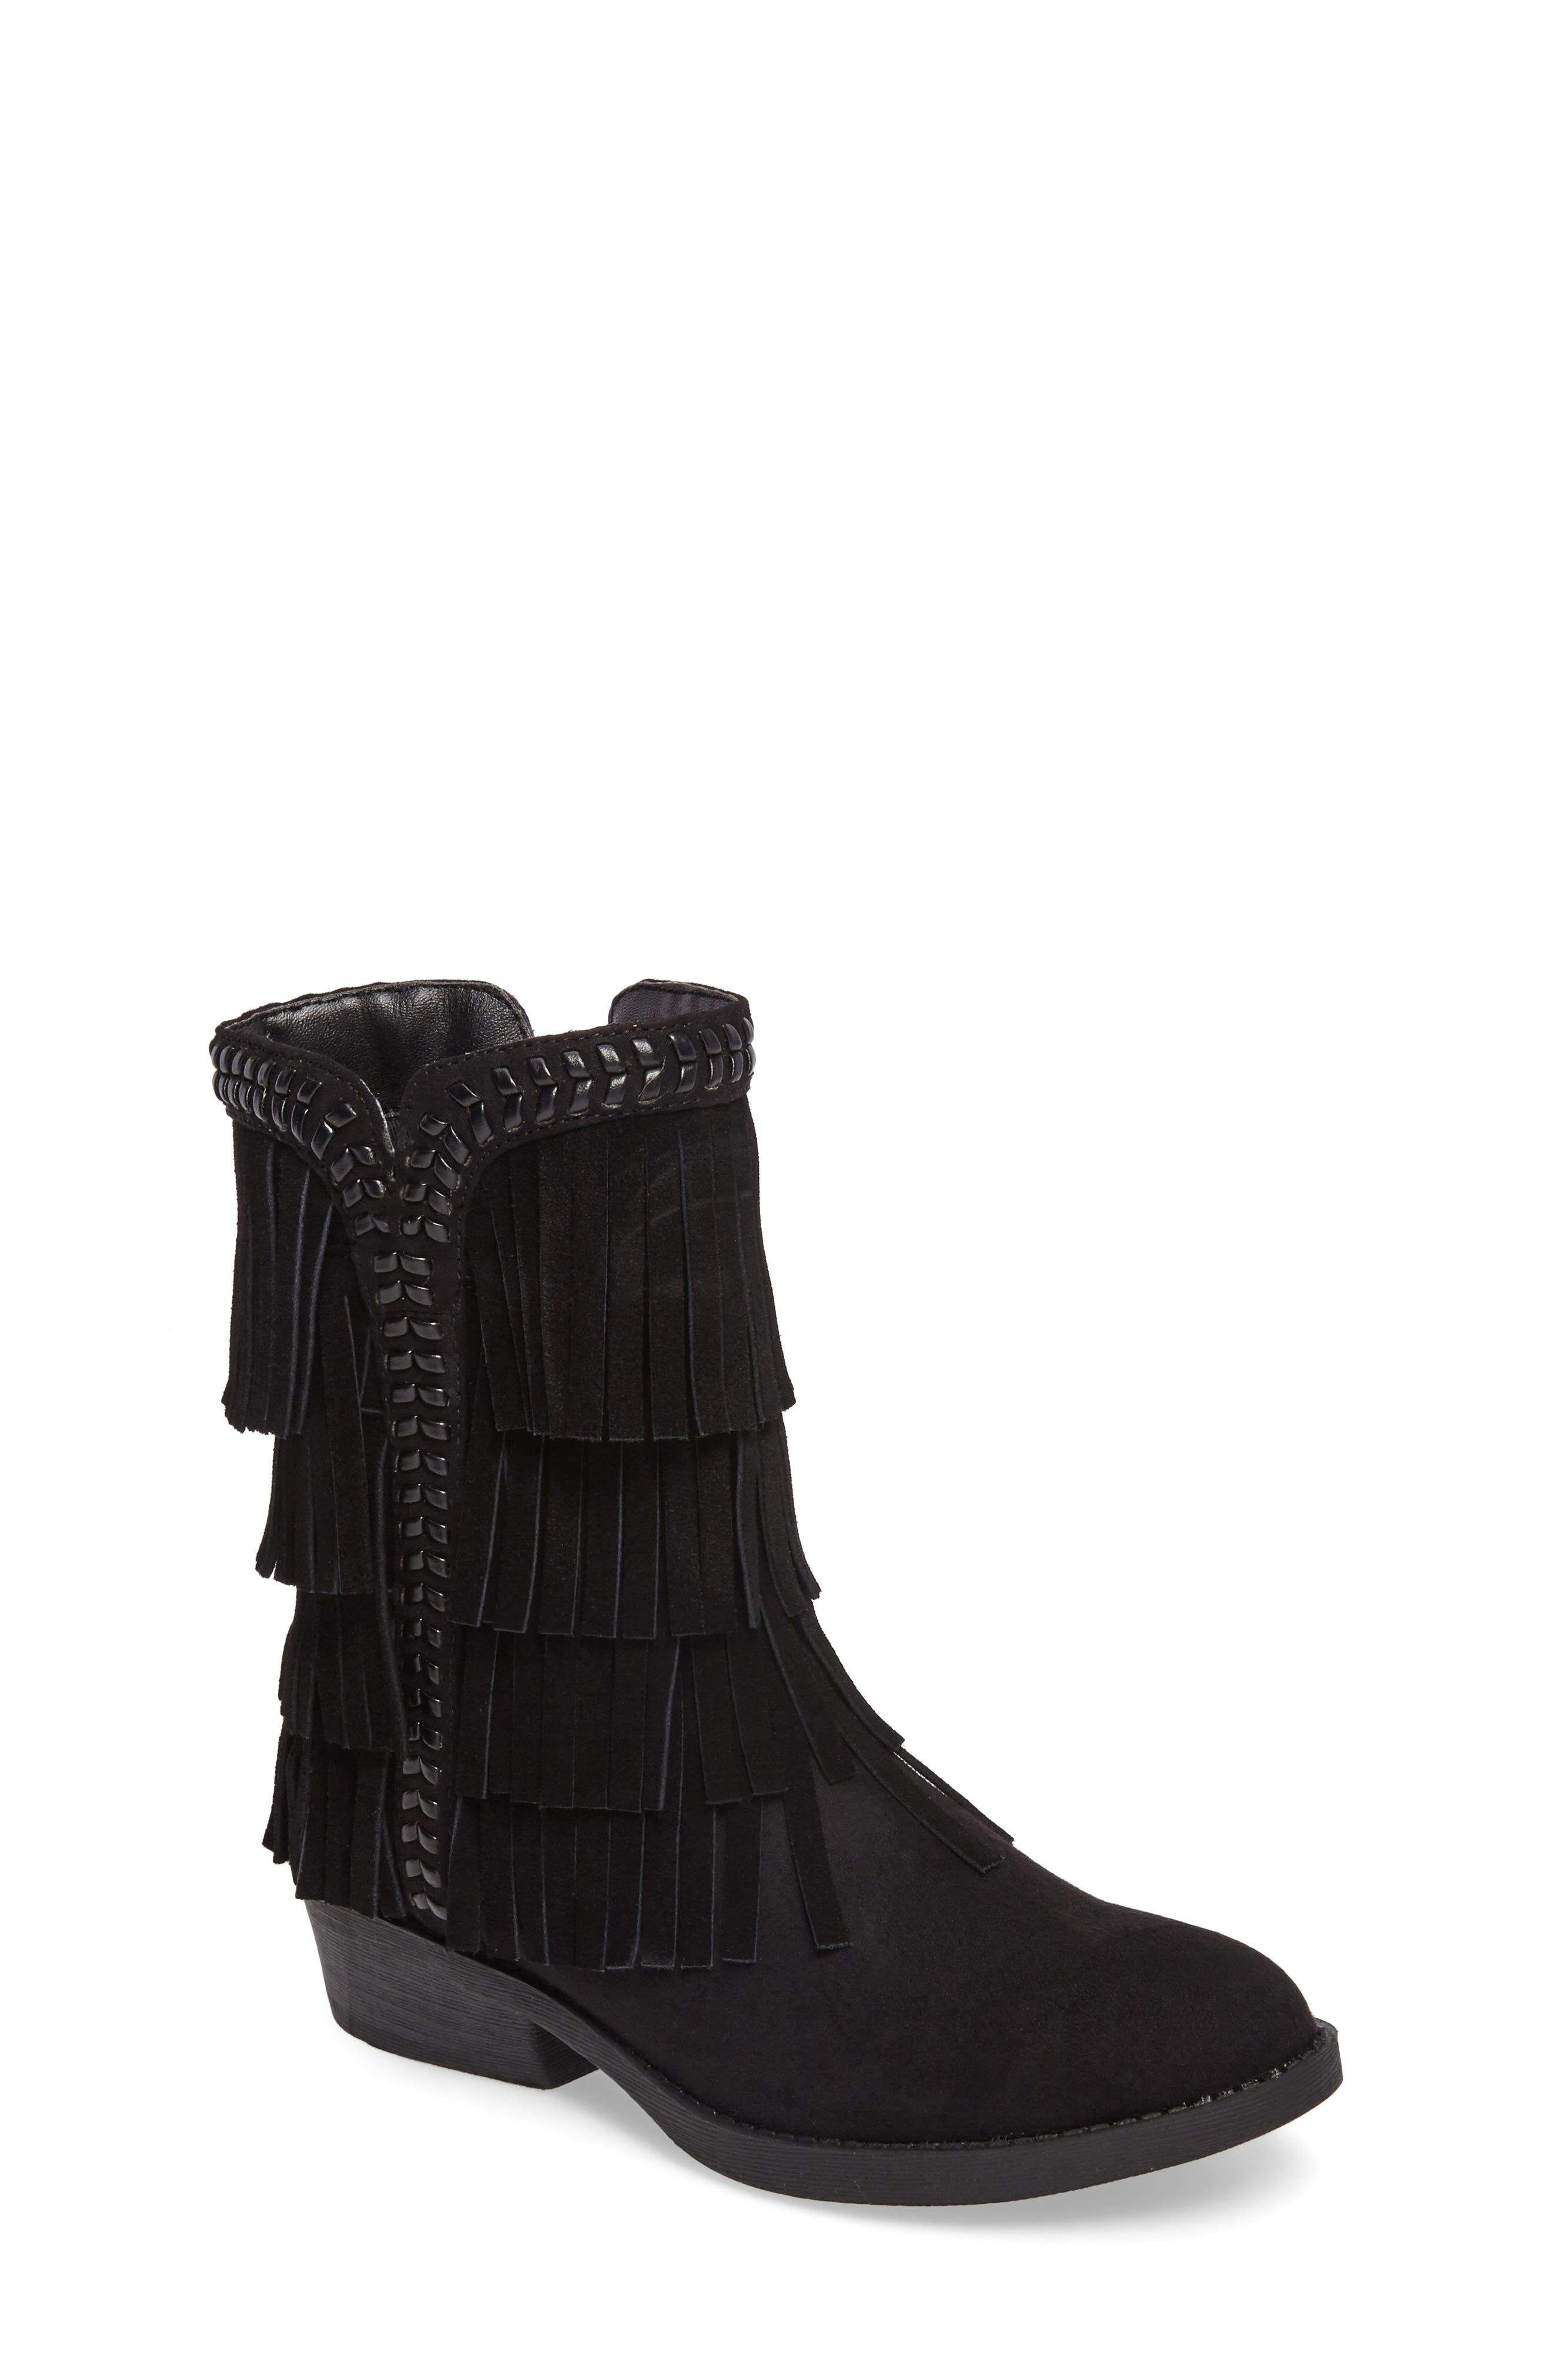 Sam Edelman Becka Kasey Fringe Bootie (Toddler, Little Kid & Big Kid)